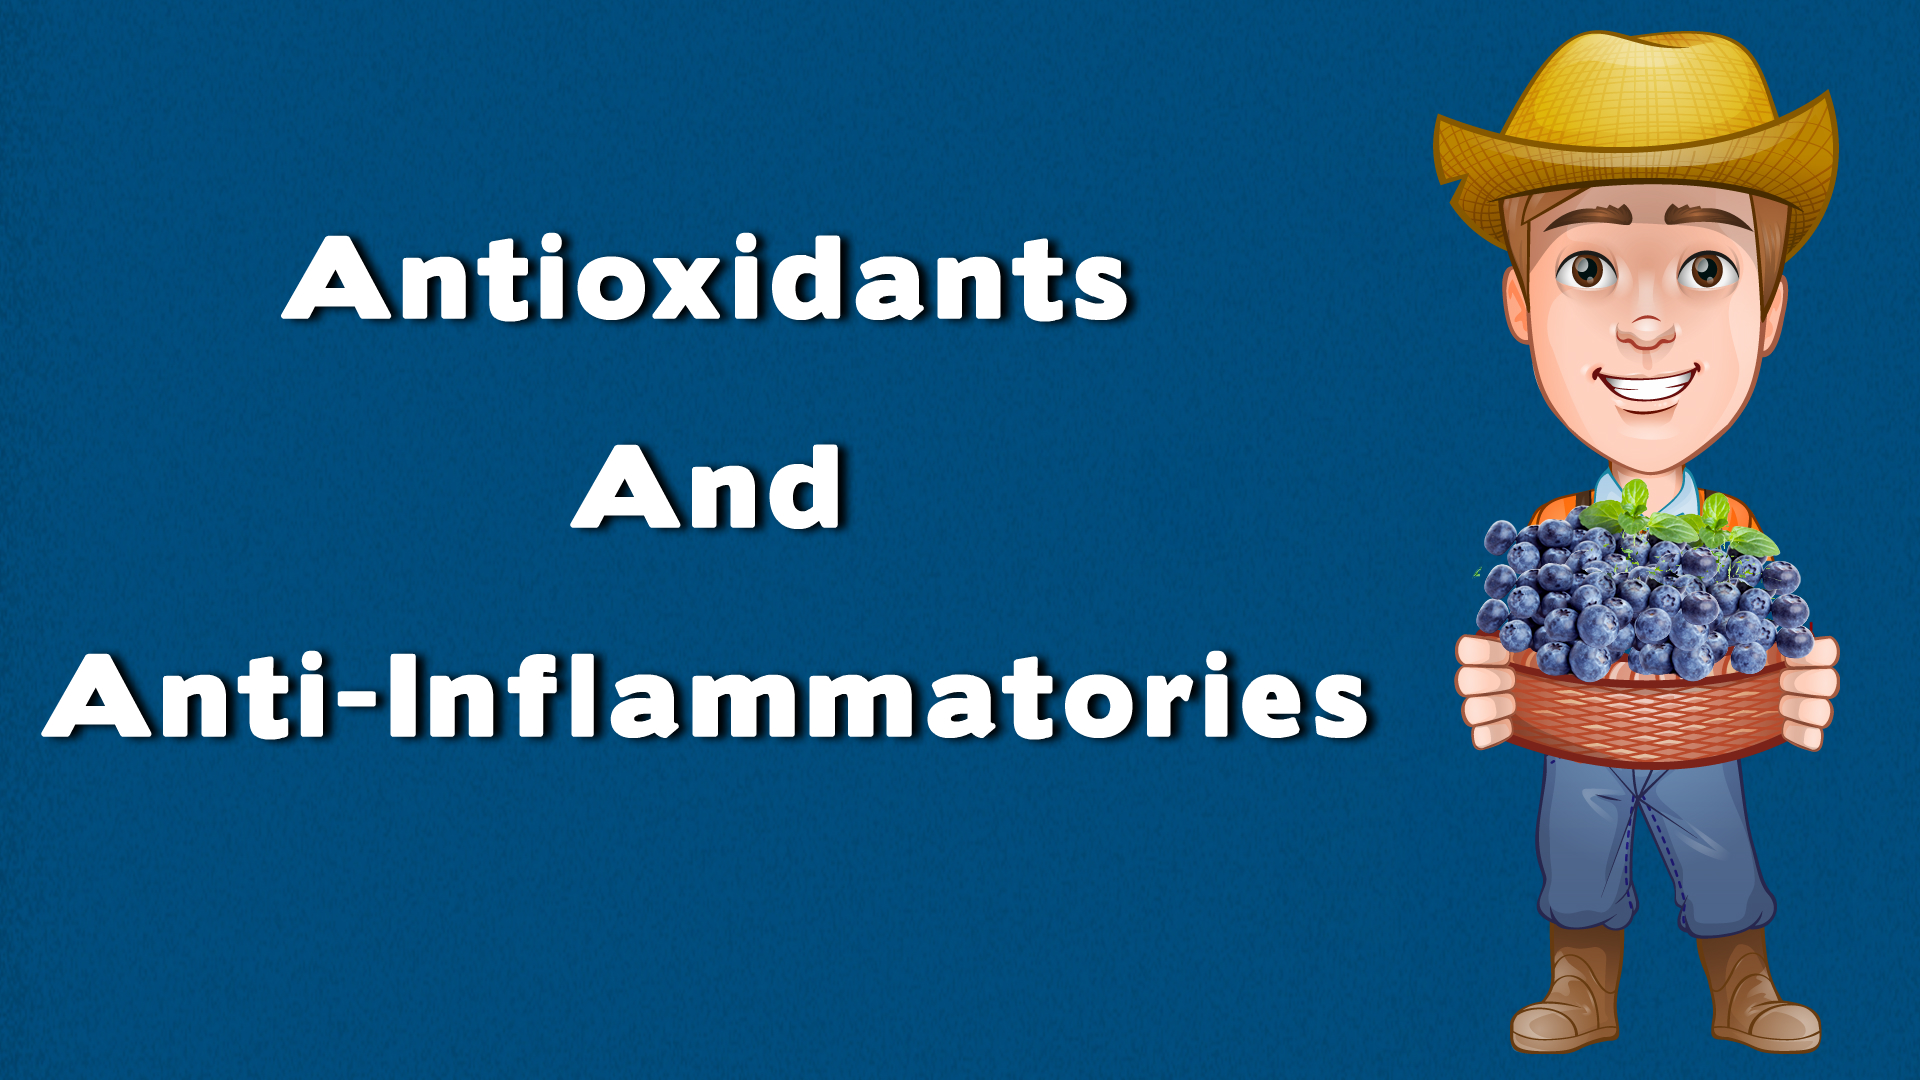 Antioxidants And Anti-Inflammatories